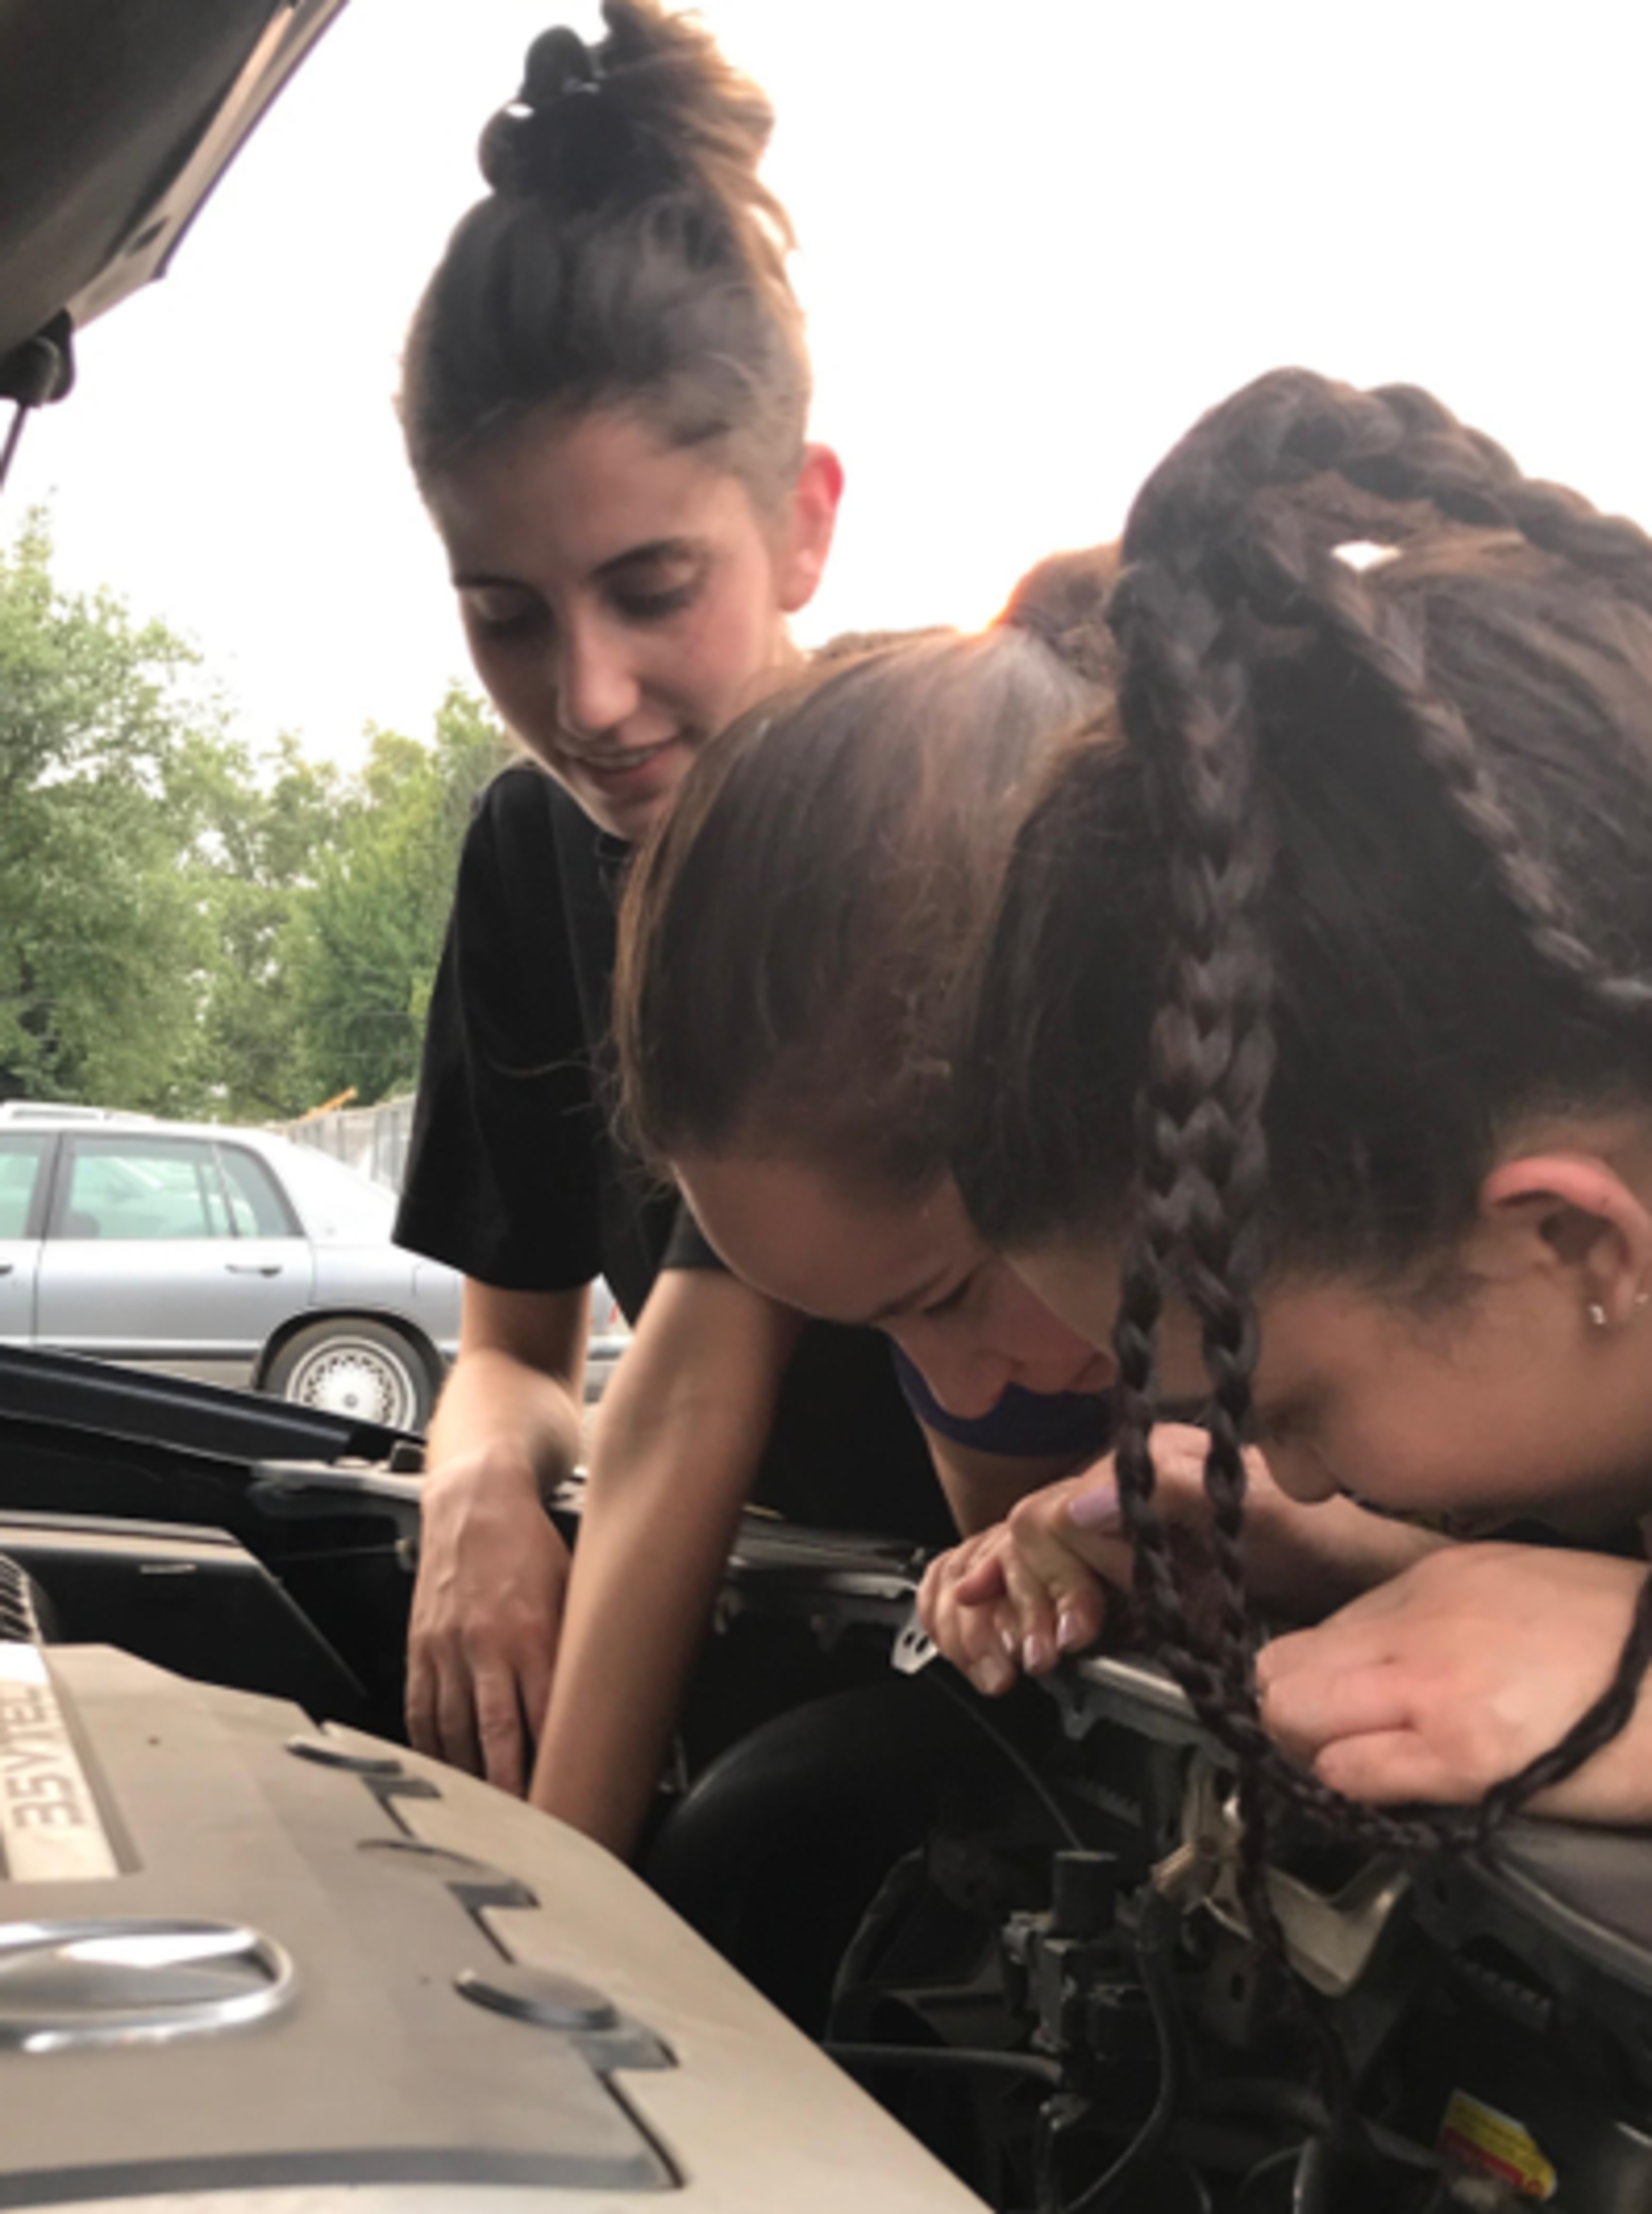 Bouit leans under a car hood with students to point out engine specifics.